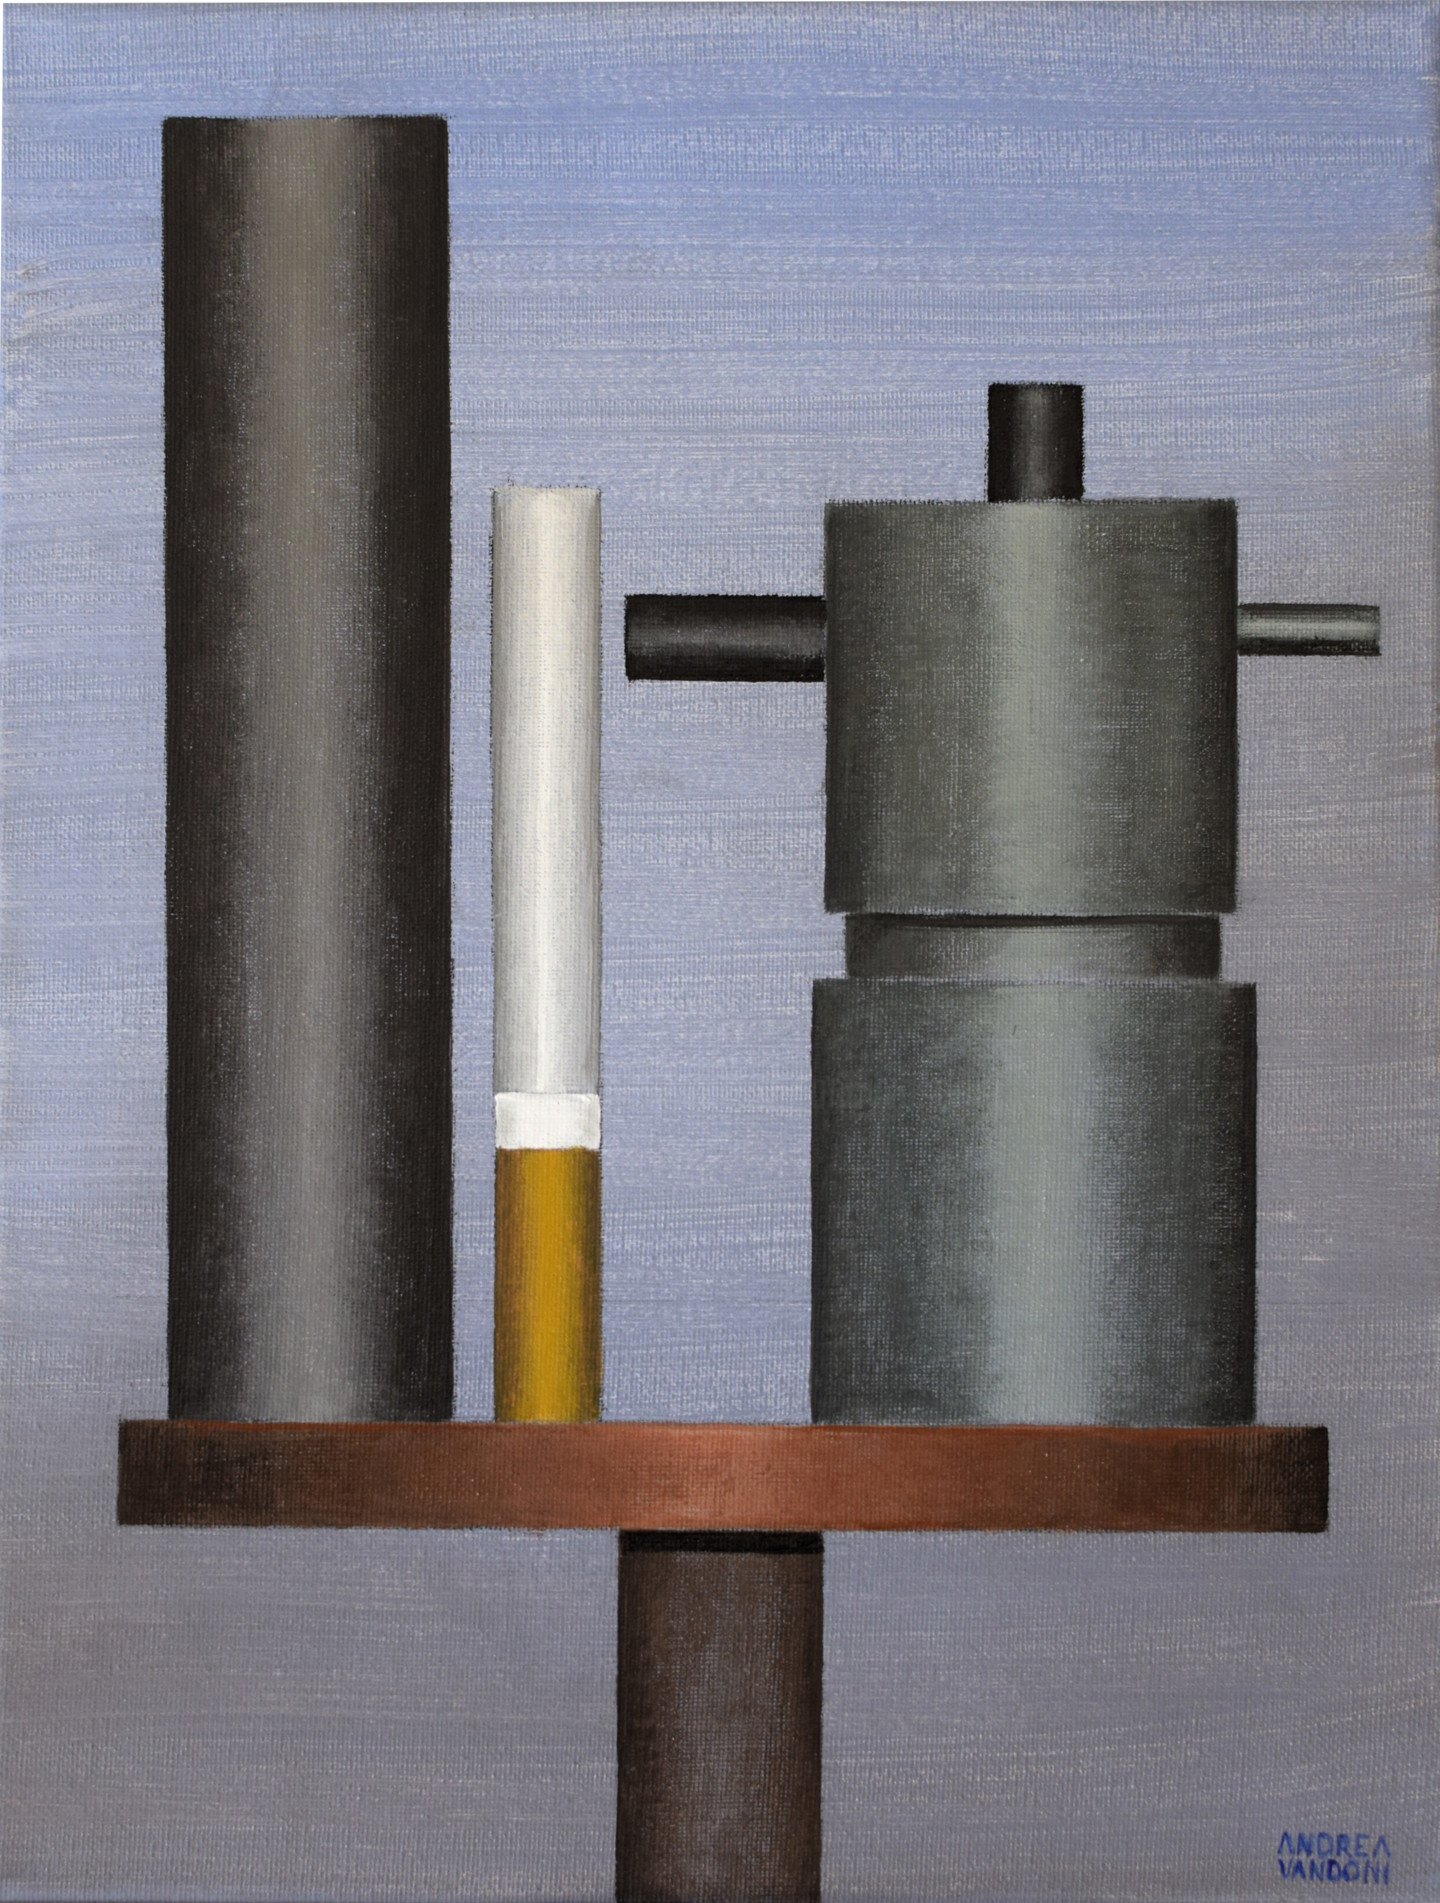 Andrea Vandoni - RECTANGLES OR CYLINDERS 2